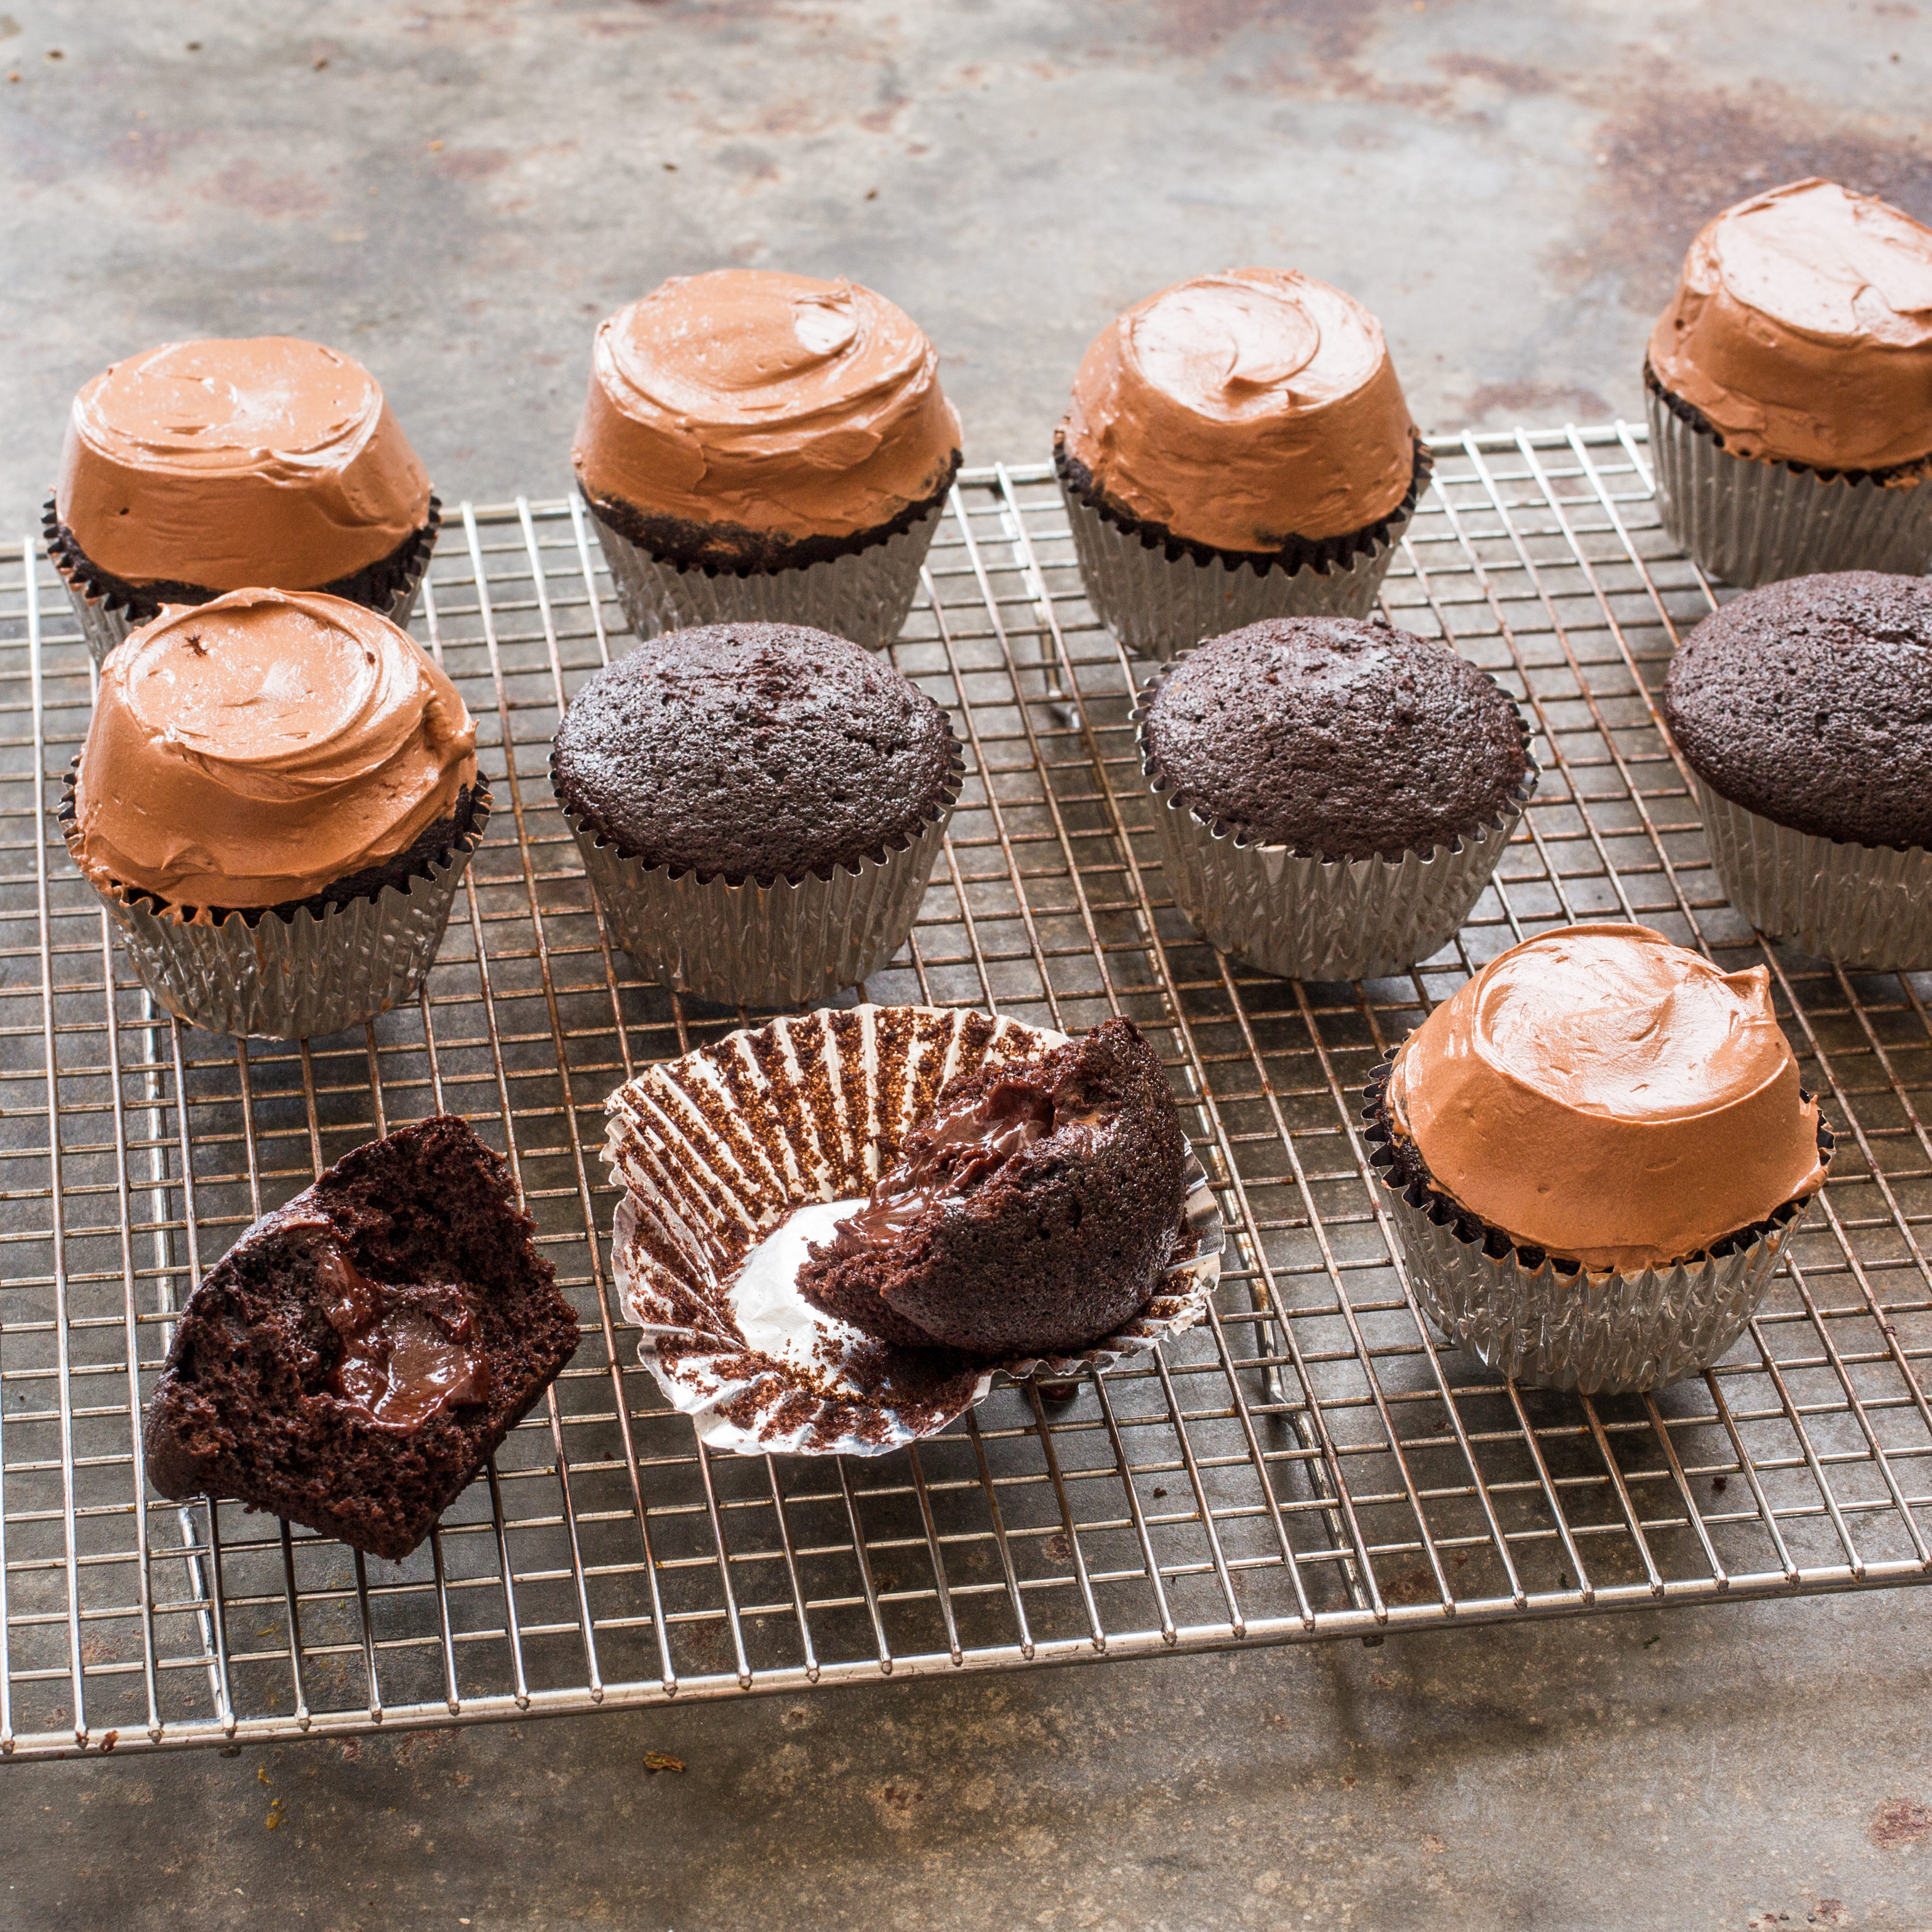 ... Cupcakes with Ganache Filling Recipe - America's Test Kitchen